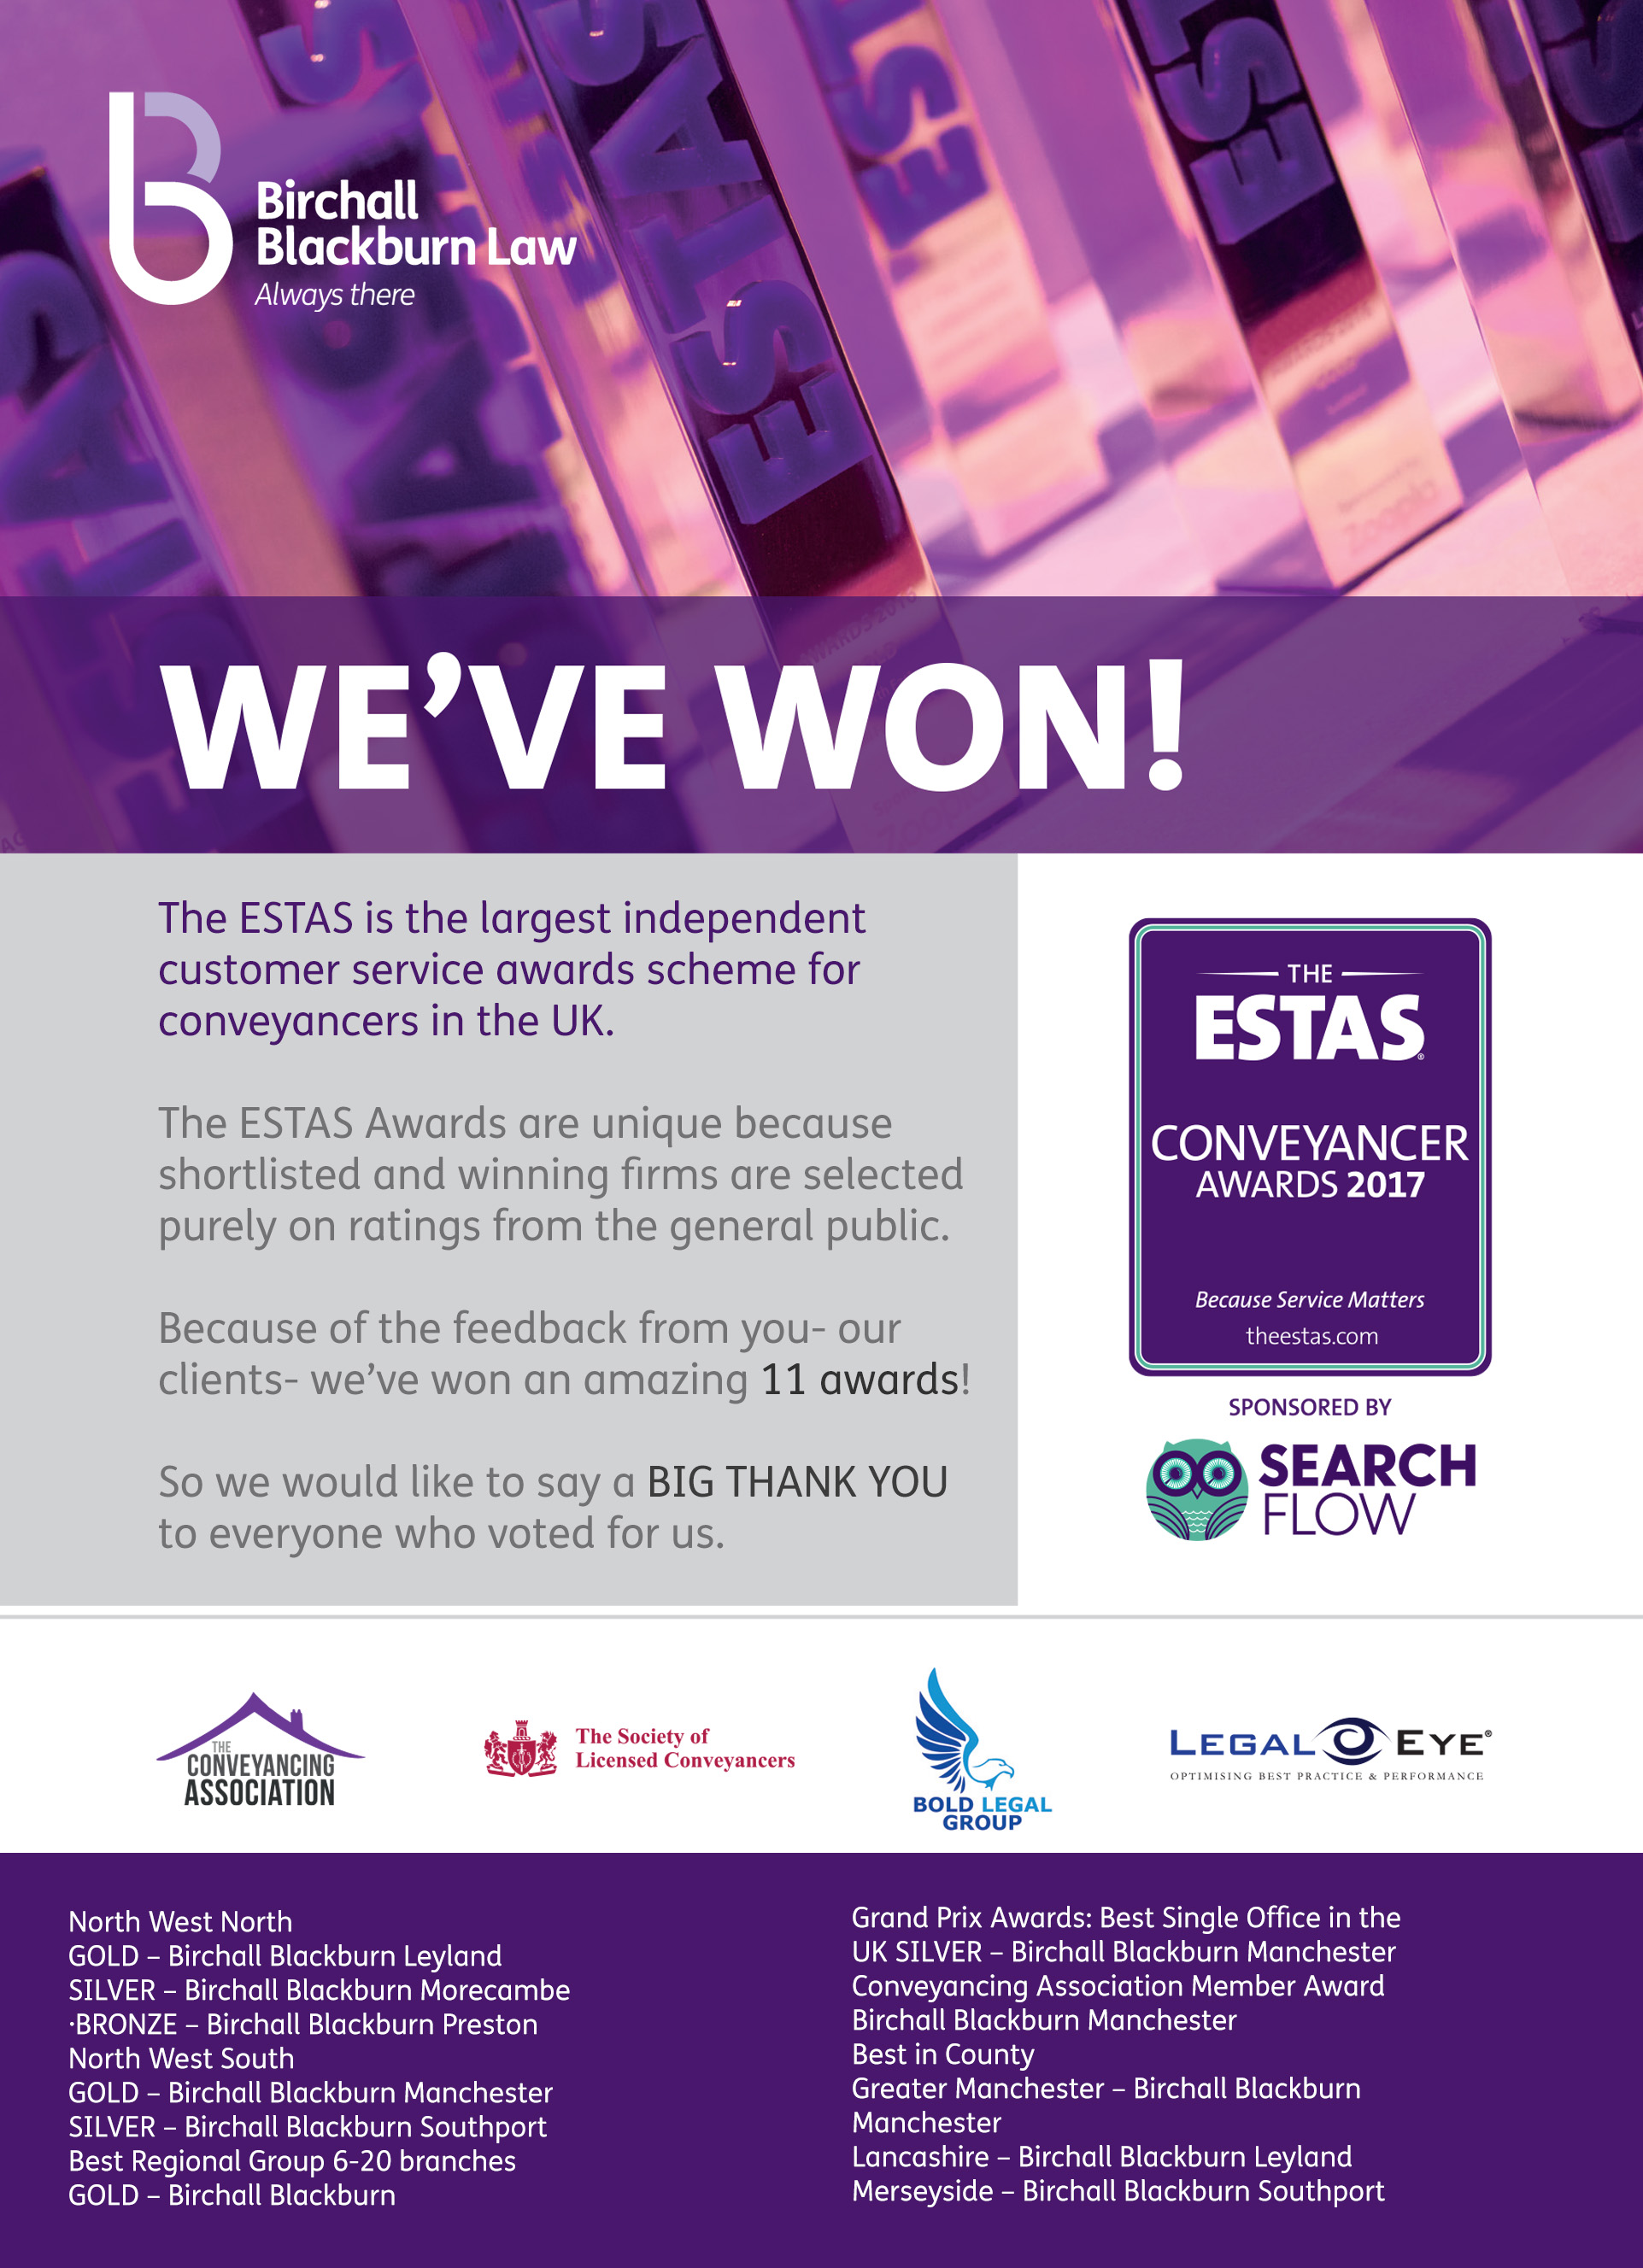 Birchall Blackburn Law wins 11 awards at the ESTAS